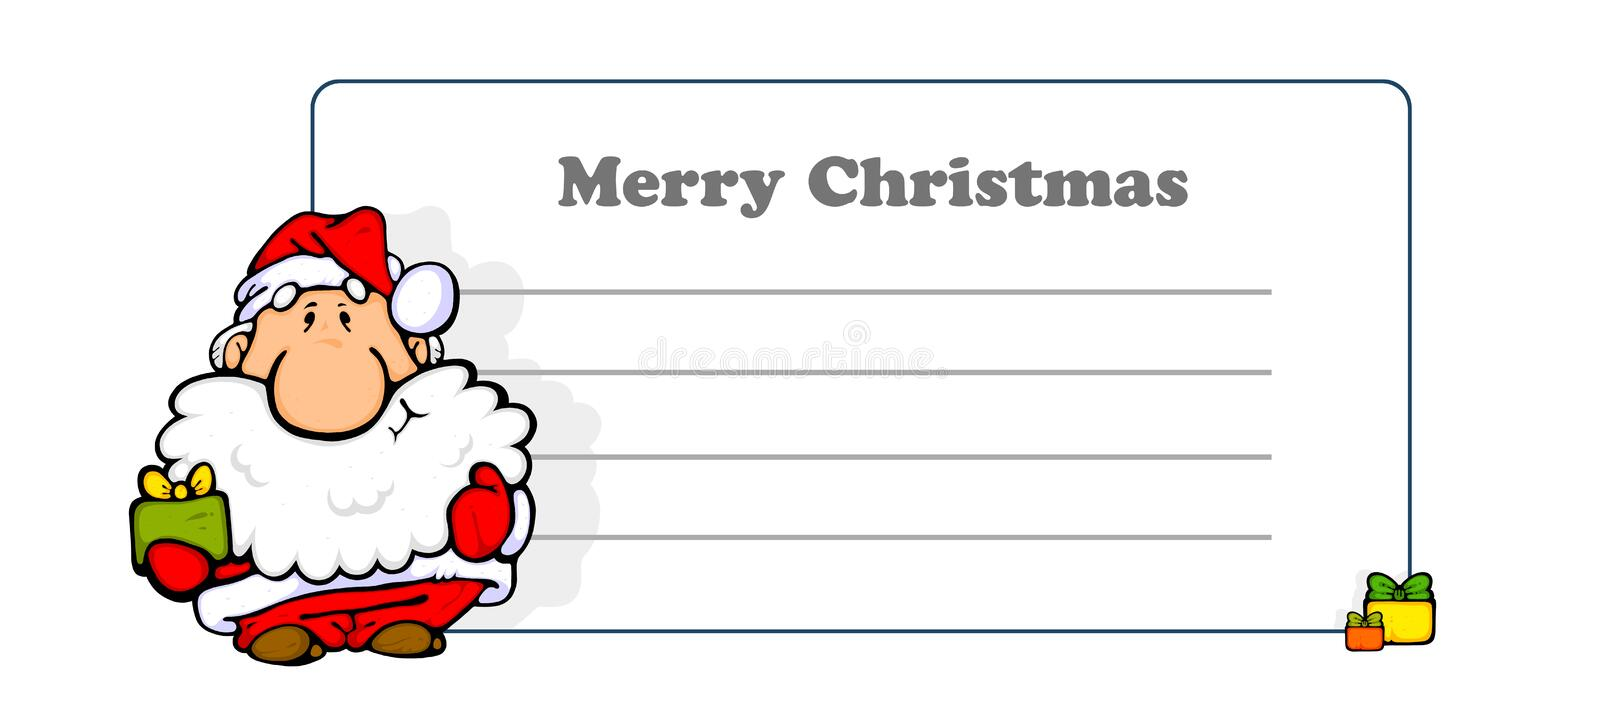 Greeting card on Merry Christmas